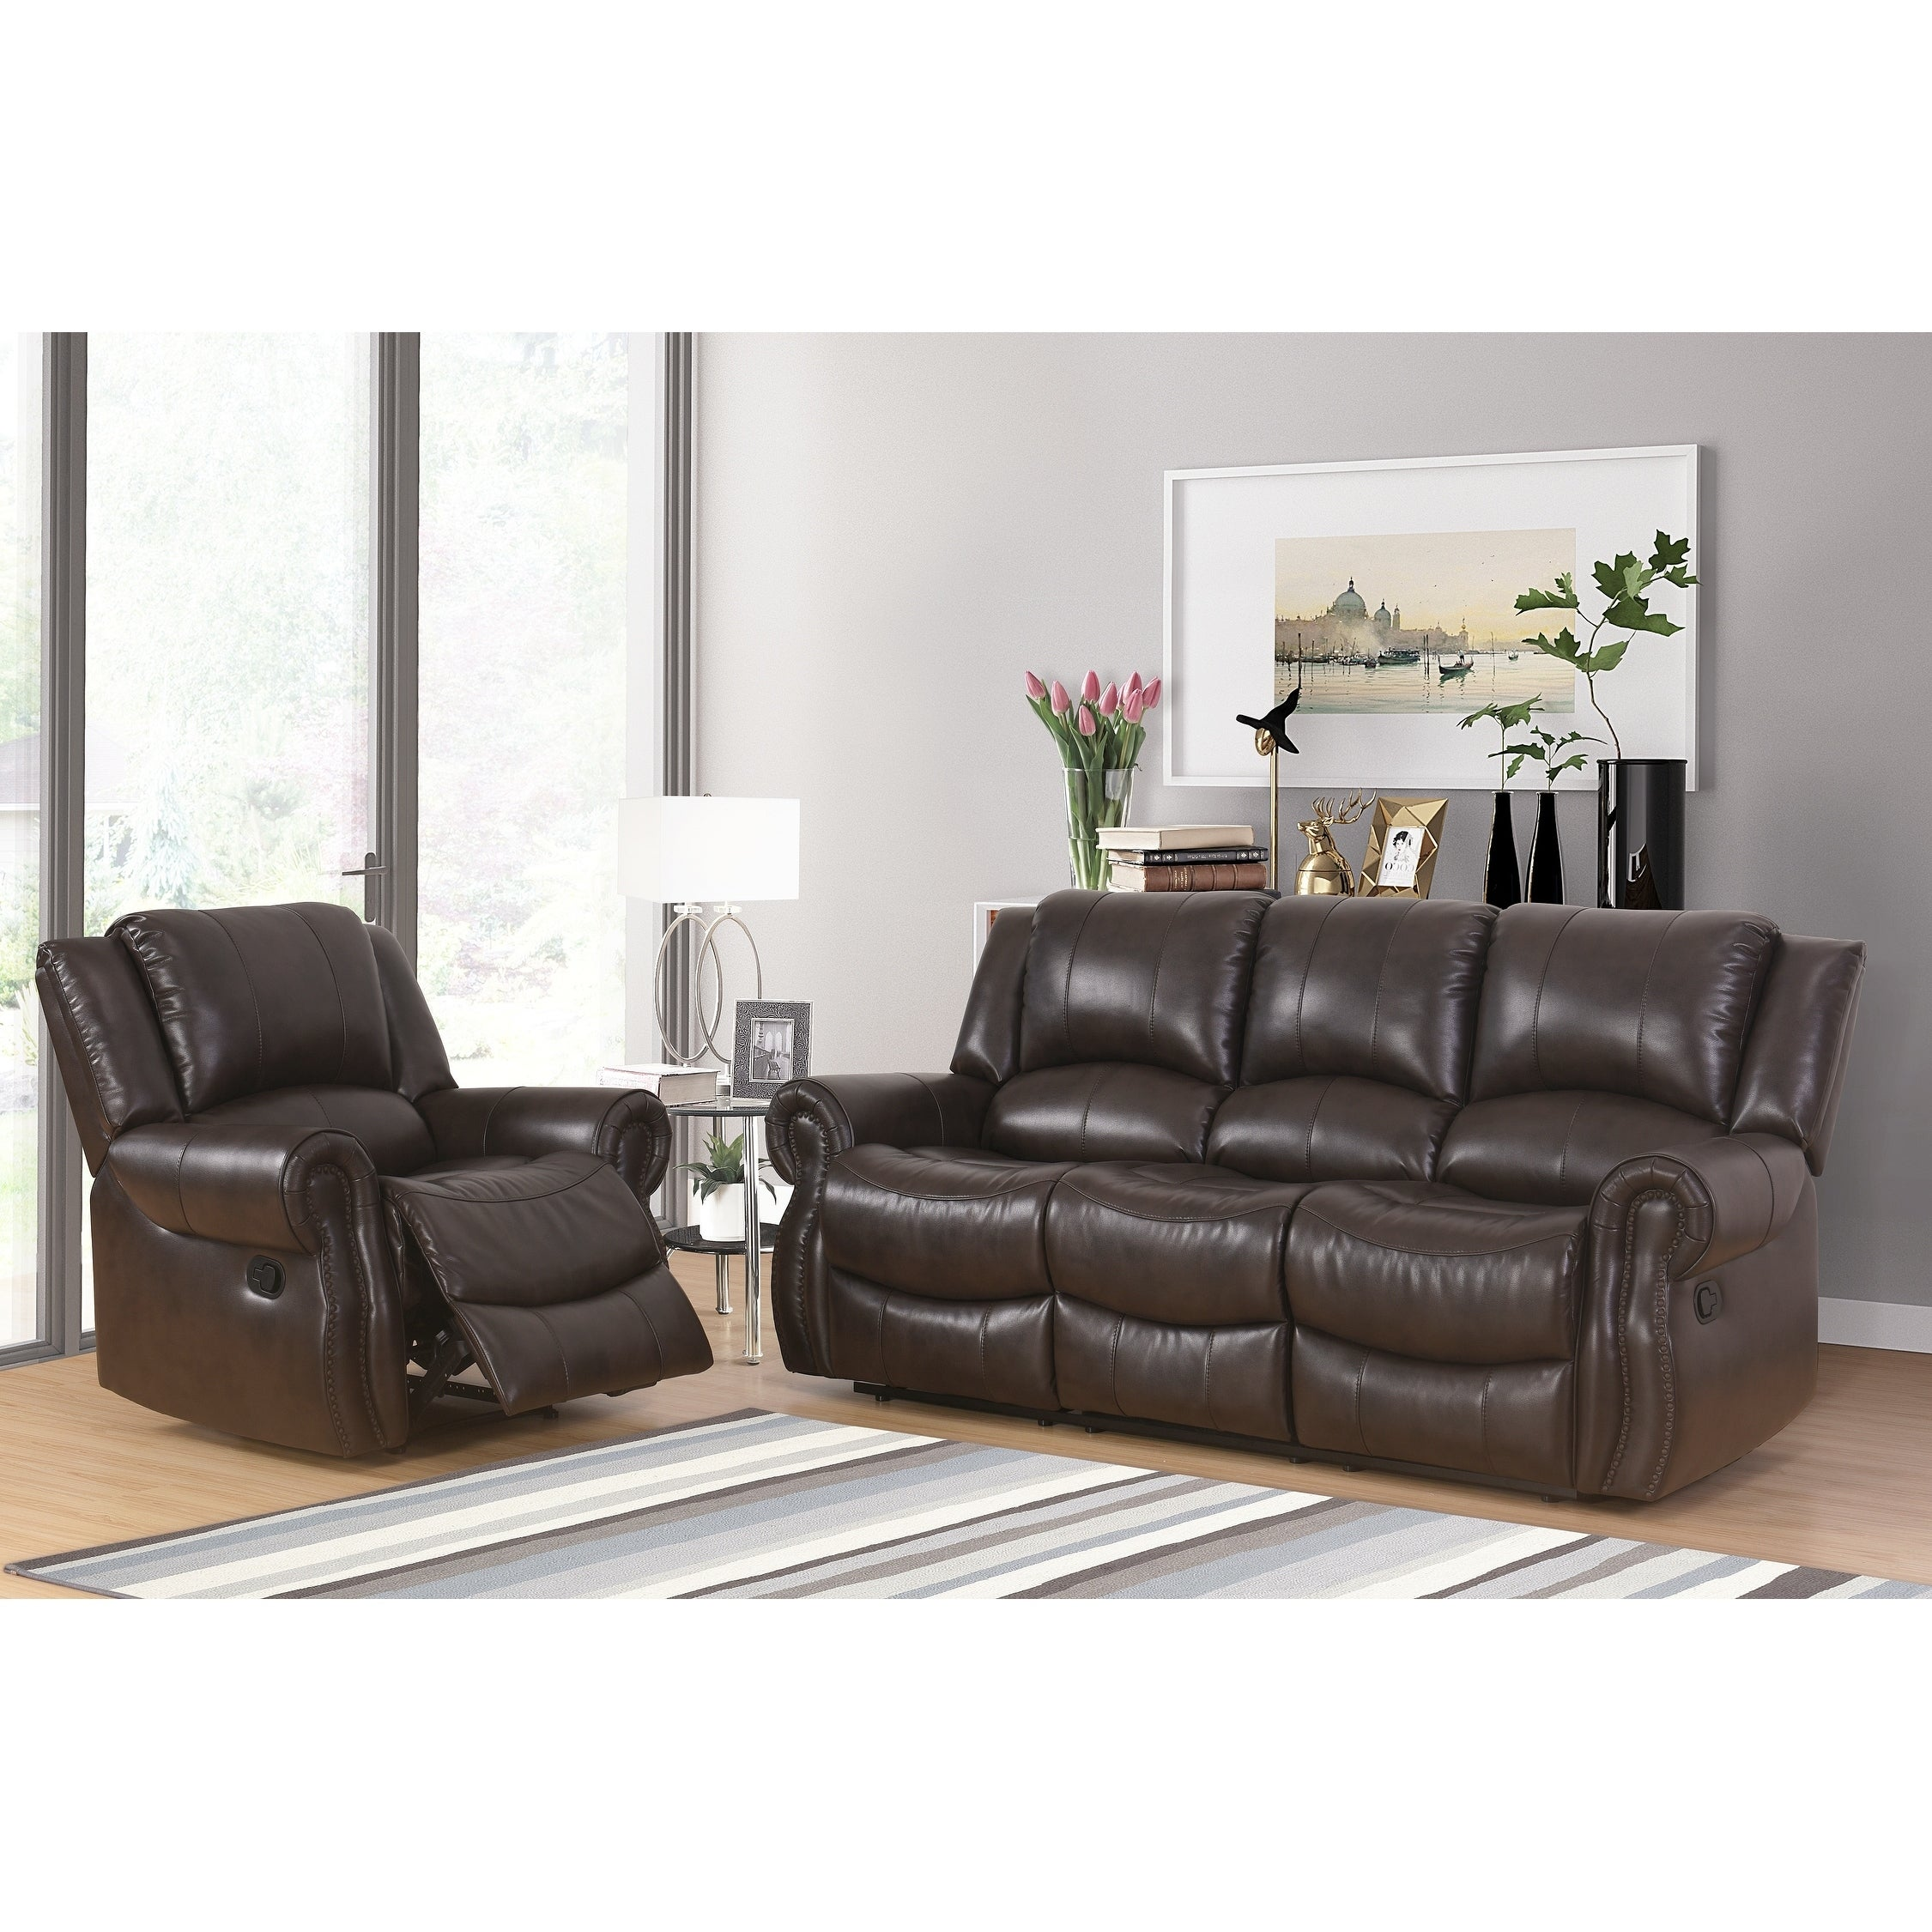 Shop Abbyson Bradford Brown 2 Piece Faux Leather Living Room Set ...